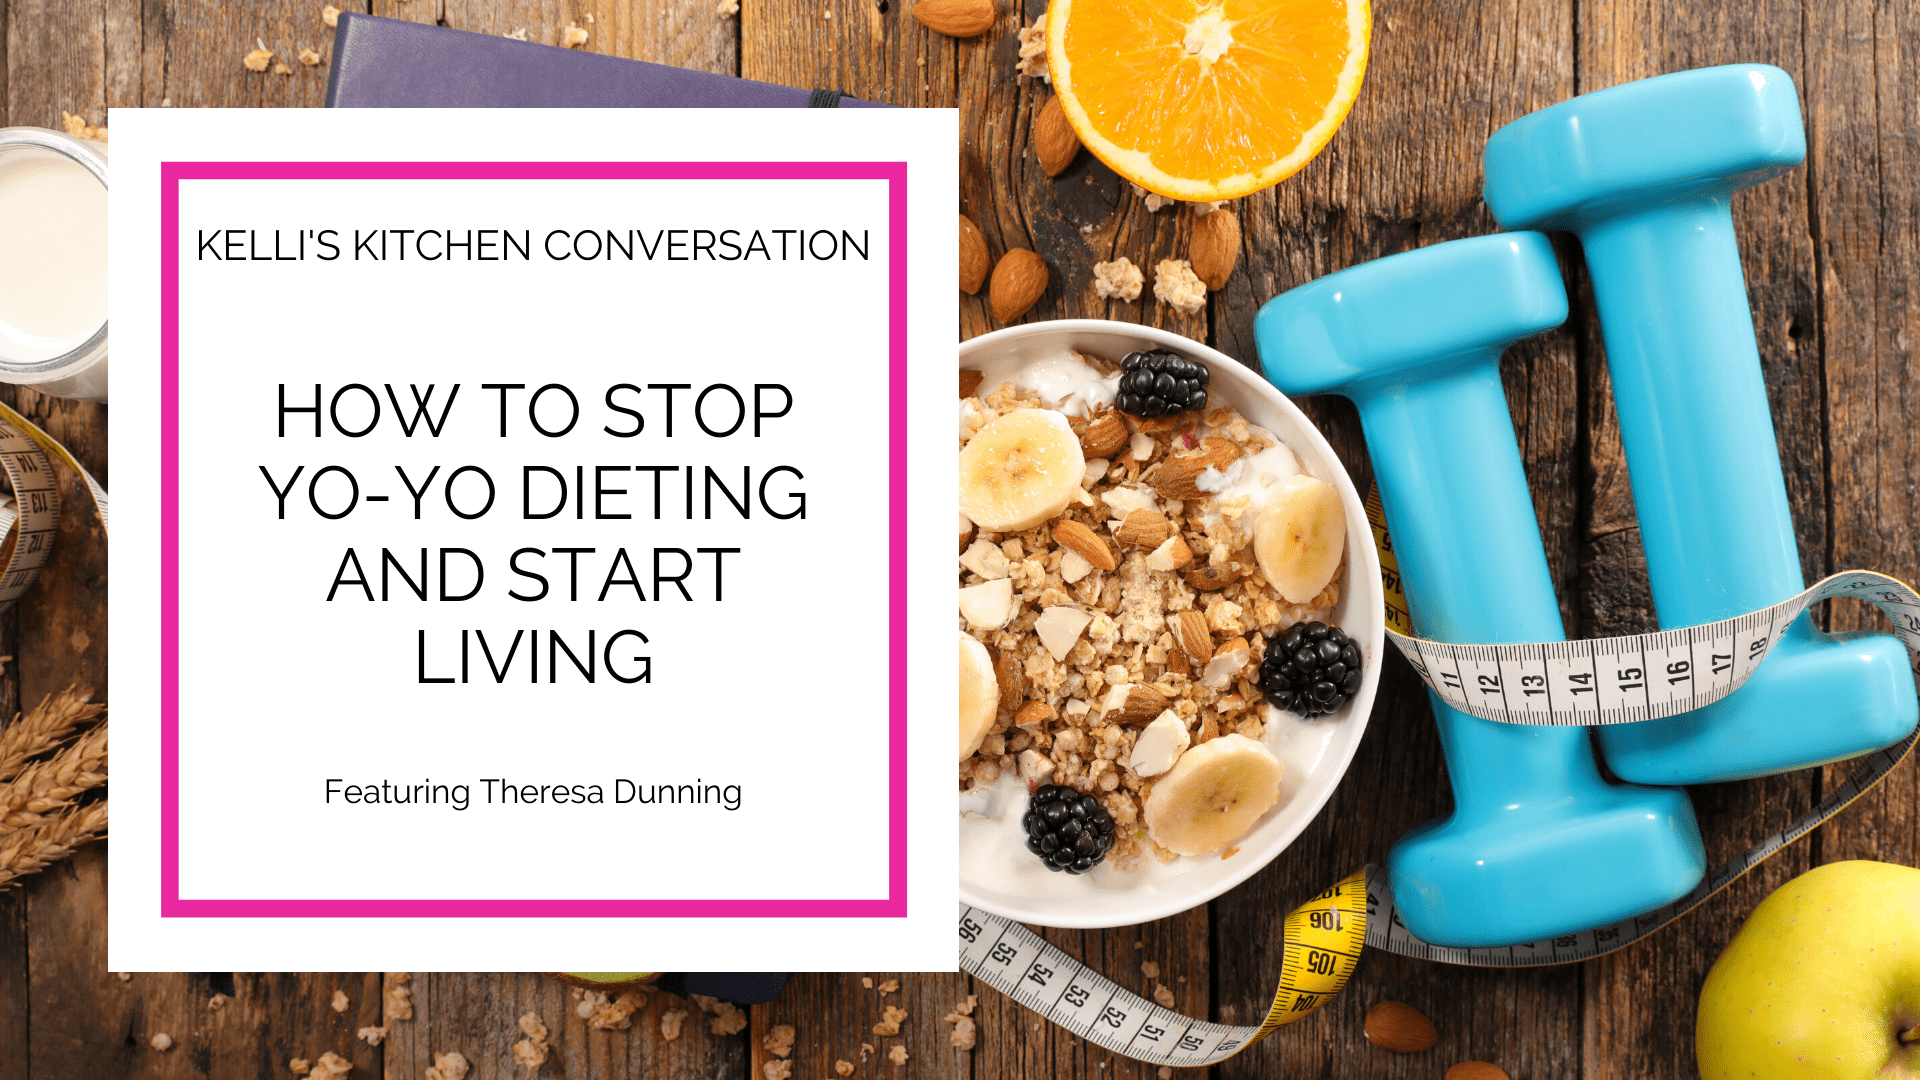 How to Stop Yo-Yo Dieting and Start Living